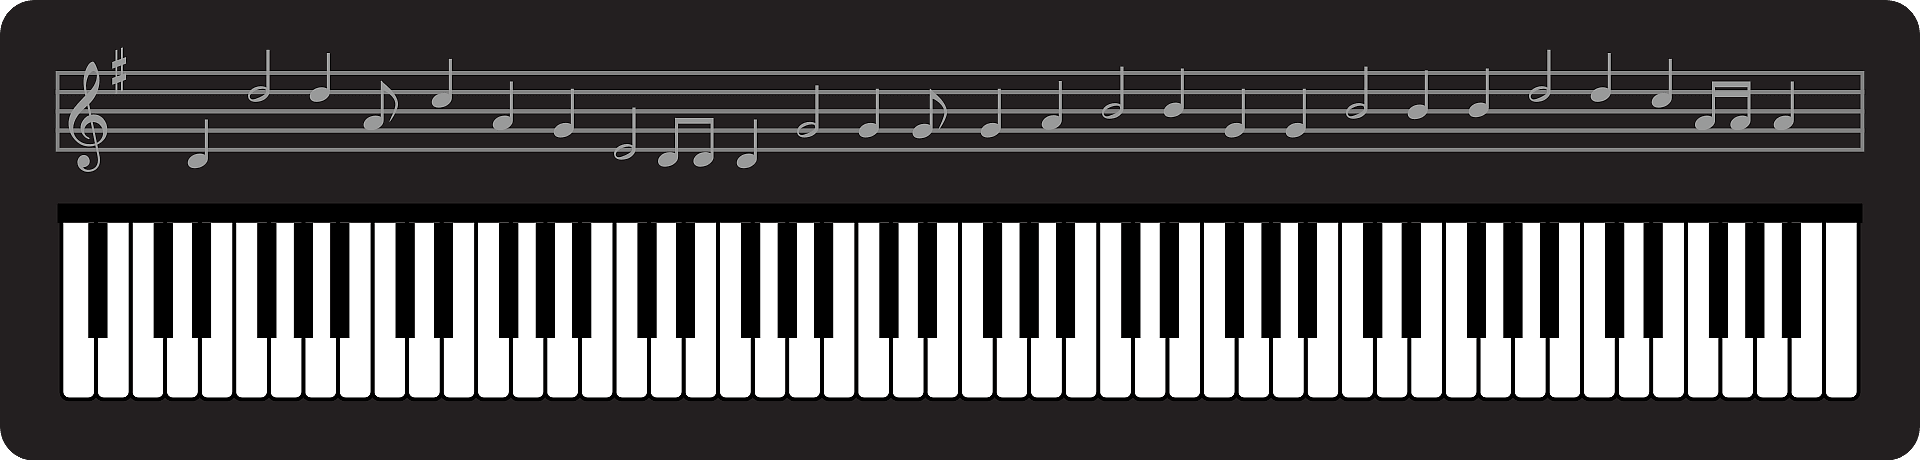 Piano Keyboard clipart transparent 1